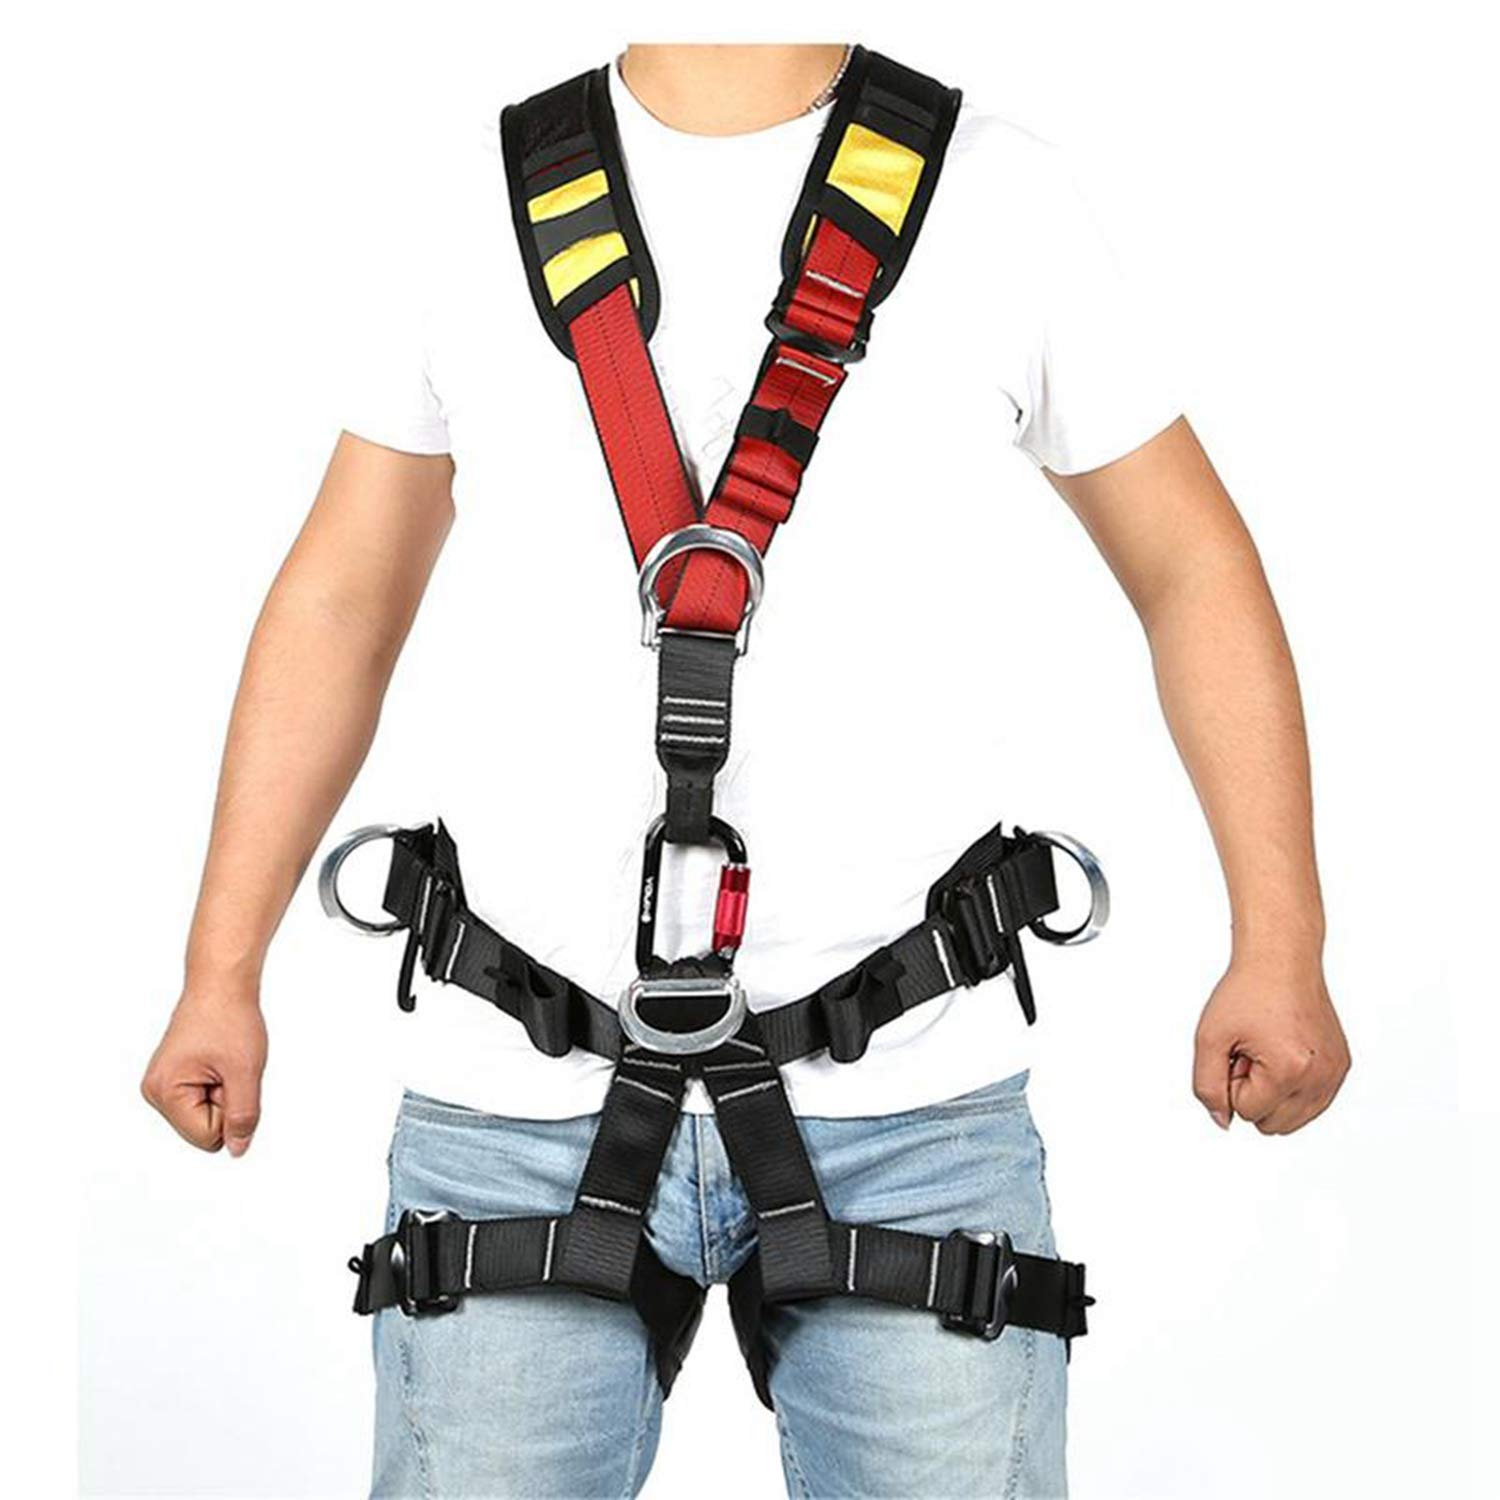 SODIAL Outdoor Climbing Rock Rappelling Mountaineering Accessories Body Wearing Seat Belt Sitting Waist Bust Protection by SODIAL (Image #5)